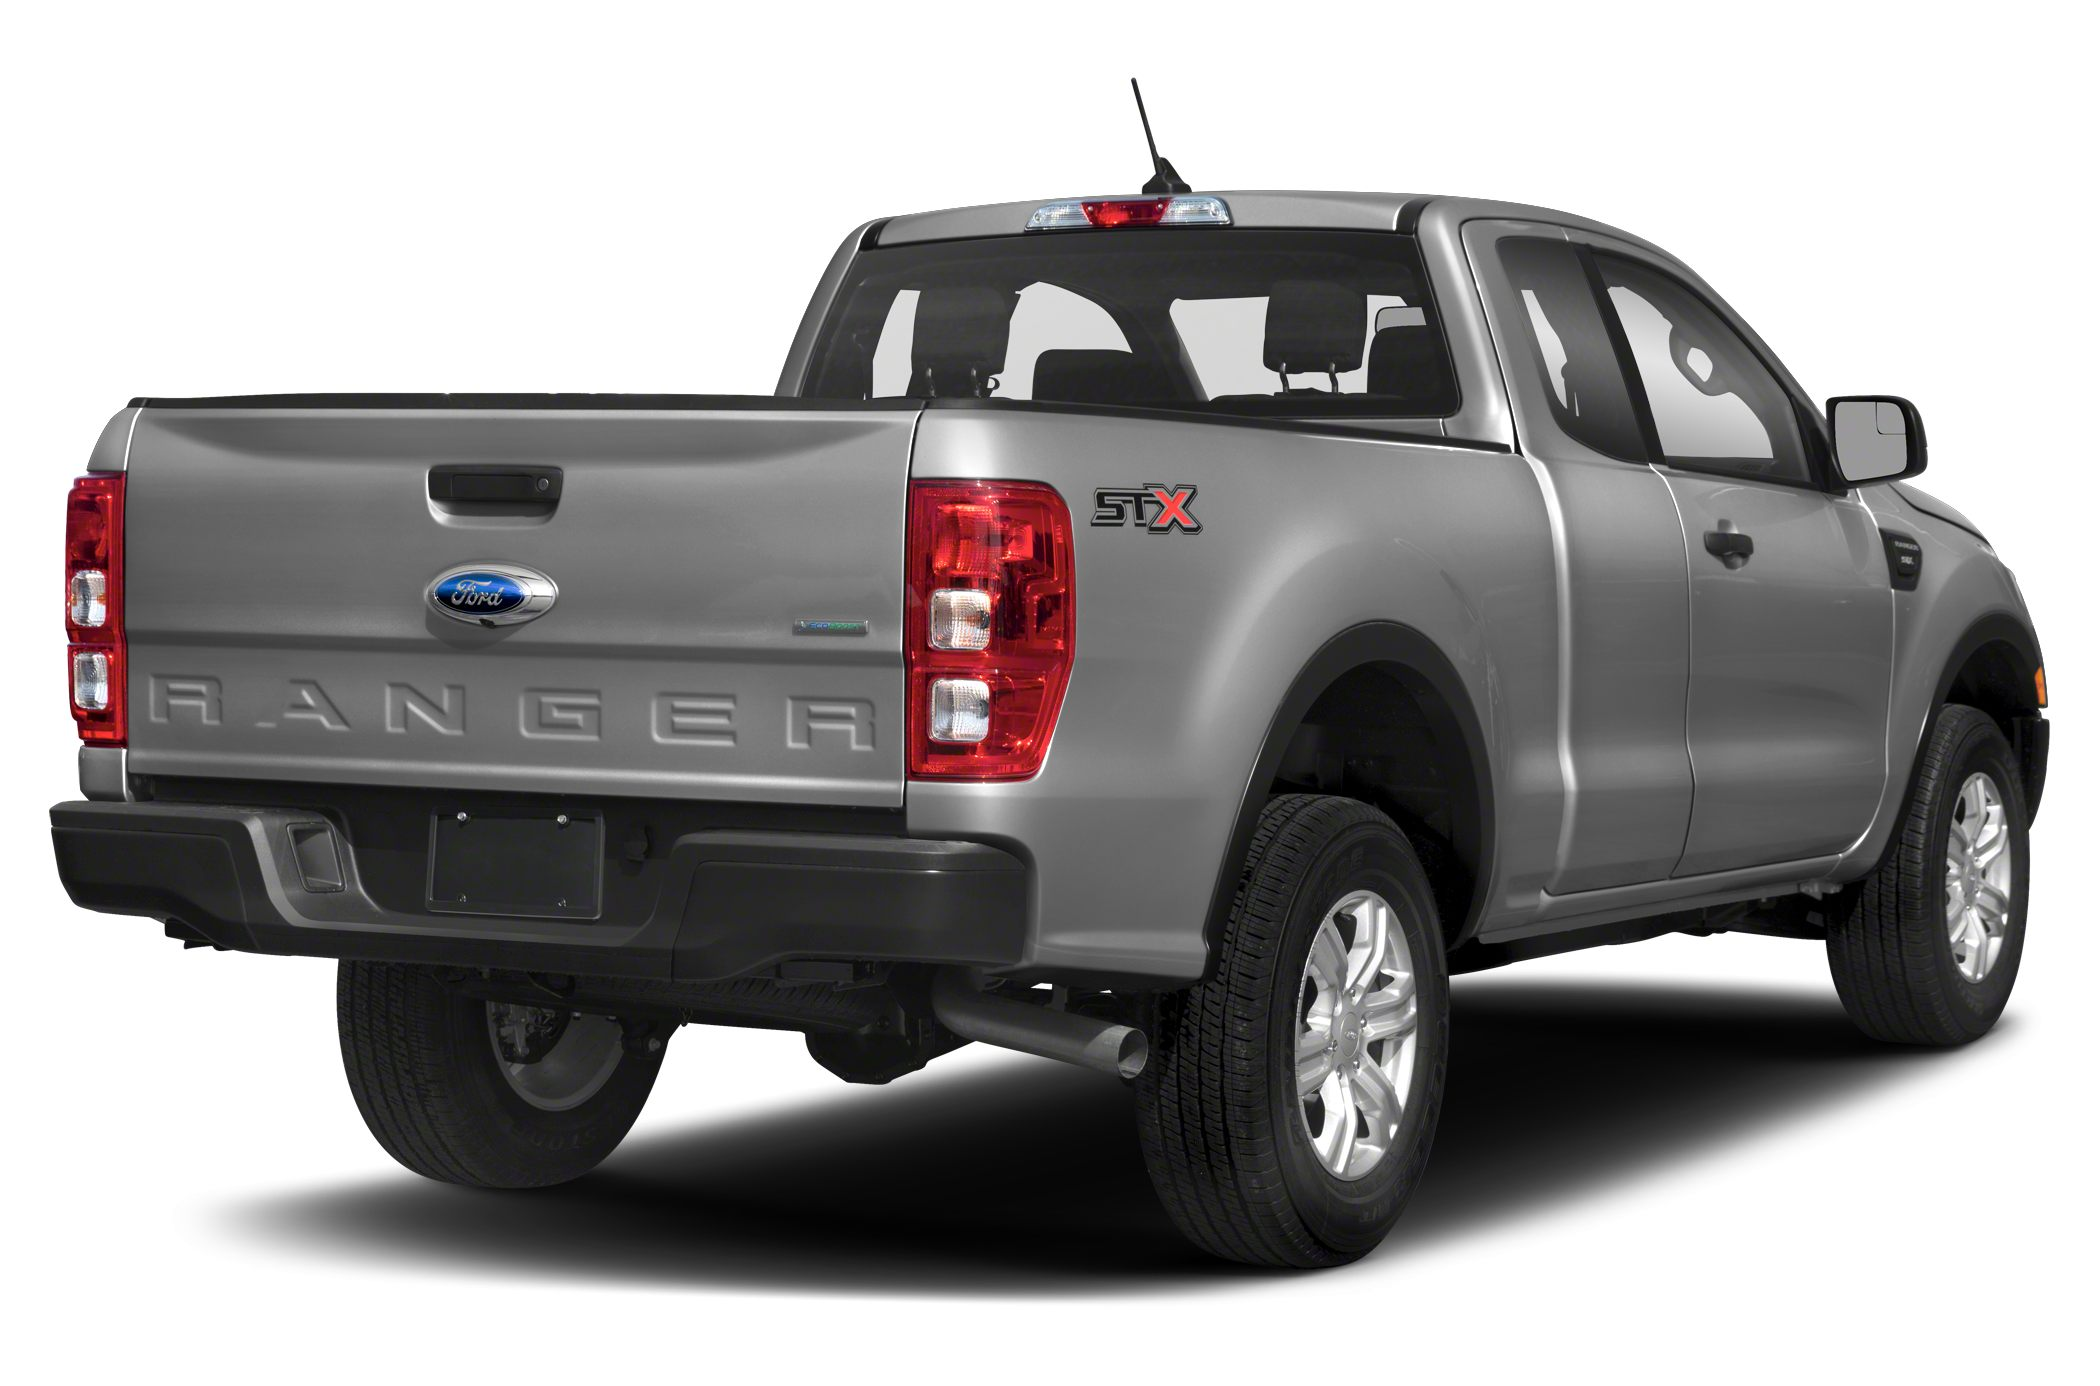 2019 Ford Ranger Deals Prices Incentives Leases Overview